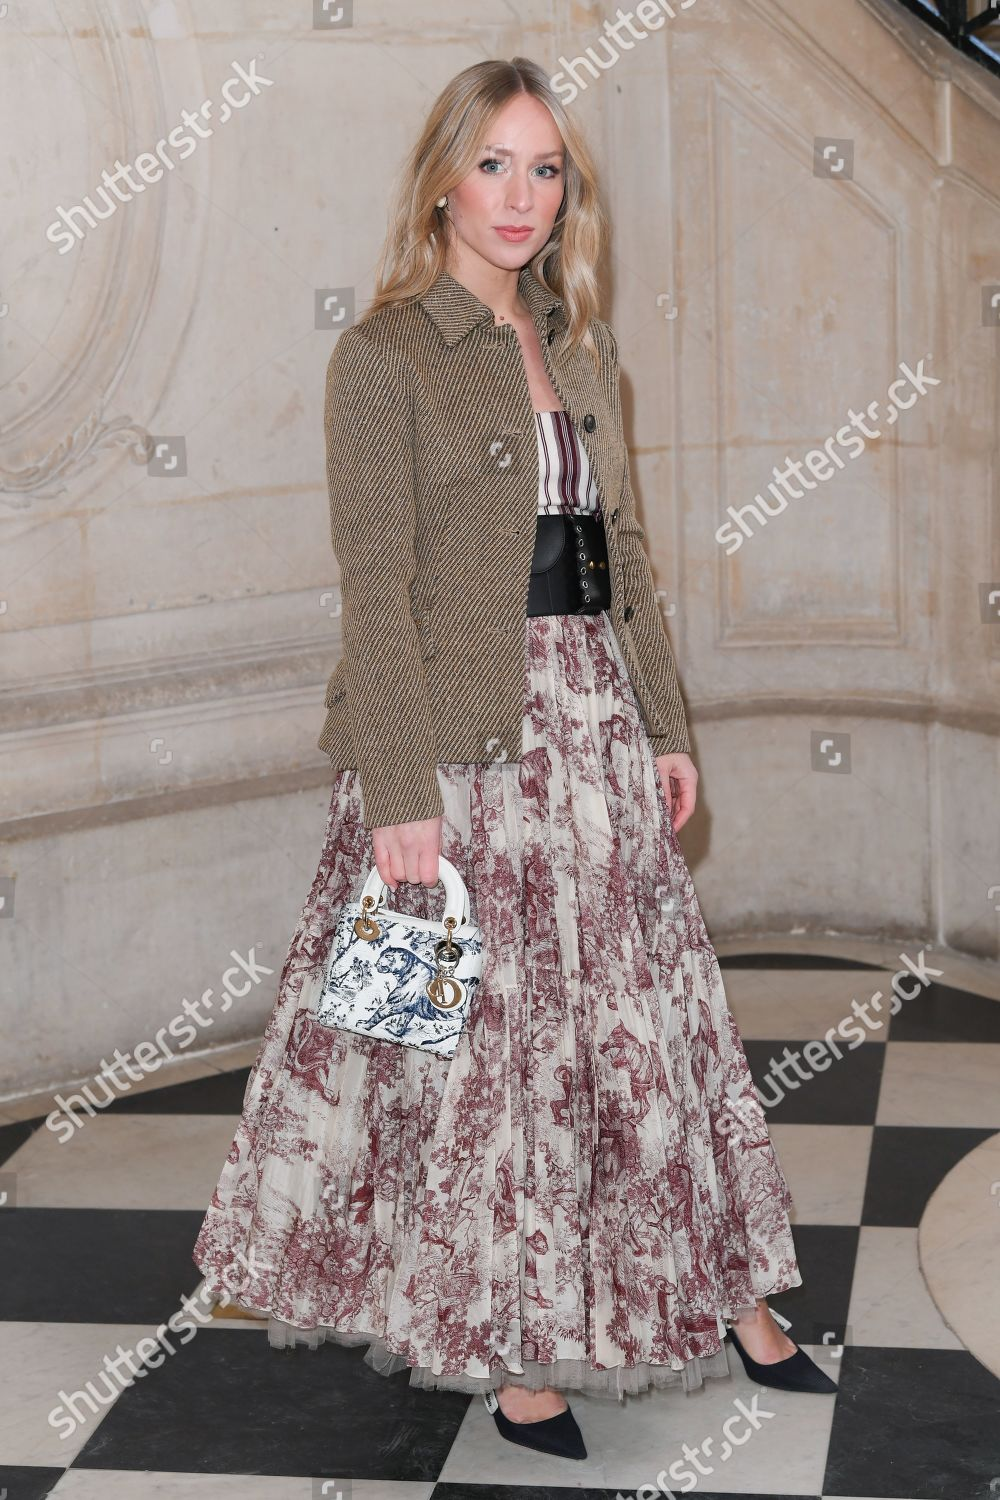 6b706f7725 Christian Dior show, Front Row, Spring Summer 2019, Haute Couture Fashion  Week, Paris, France Stock Image by David Fisher for editorial use, Jan 21,  2019